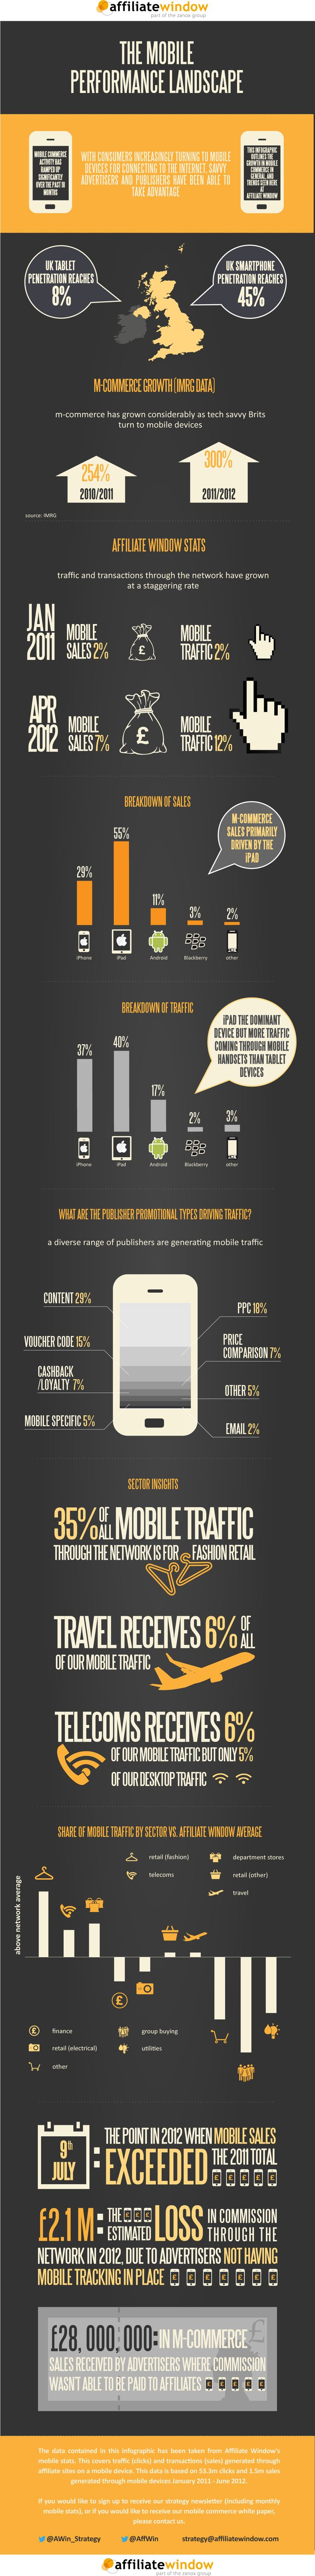 """55% of mobile commerce sales driven by the iPad [infographic] 